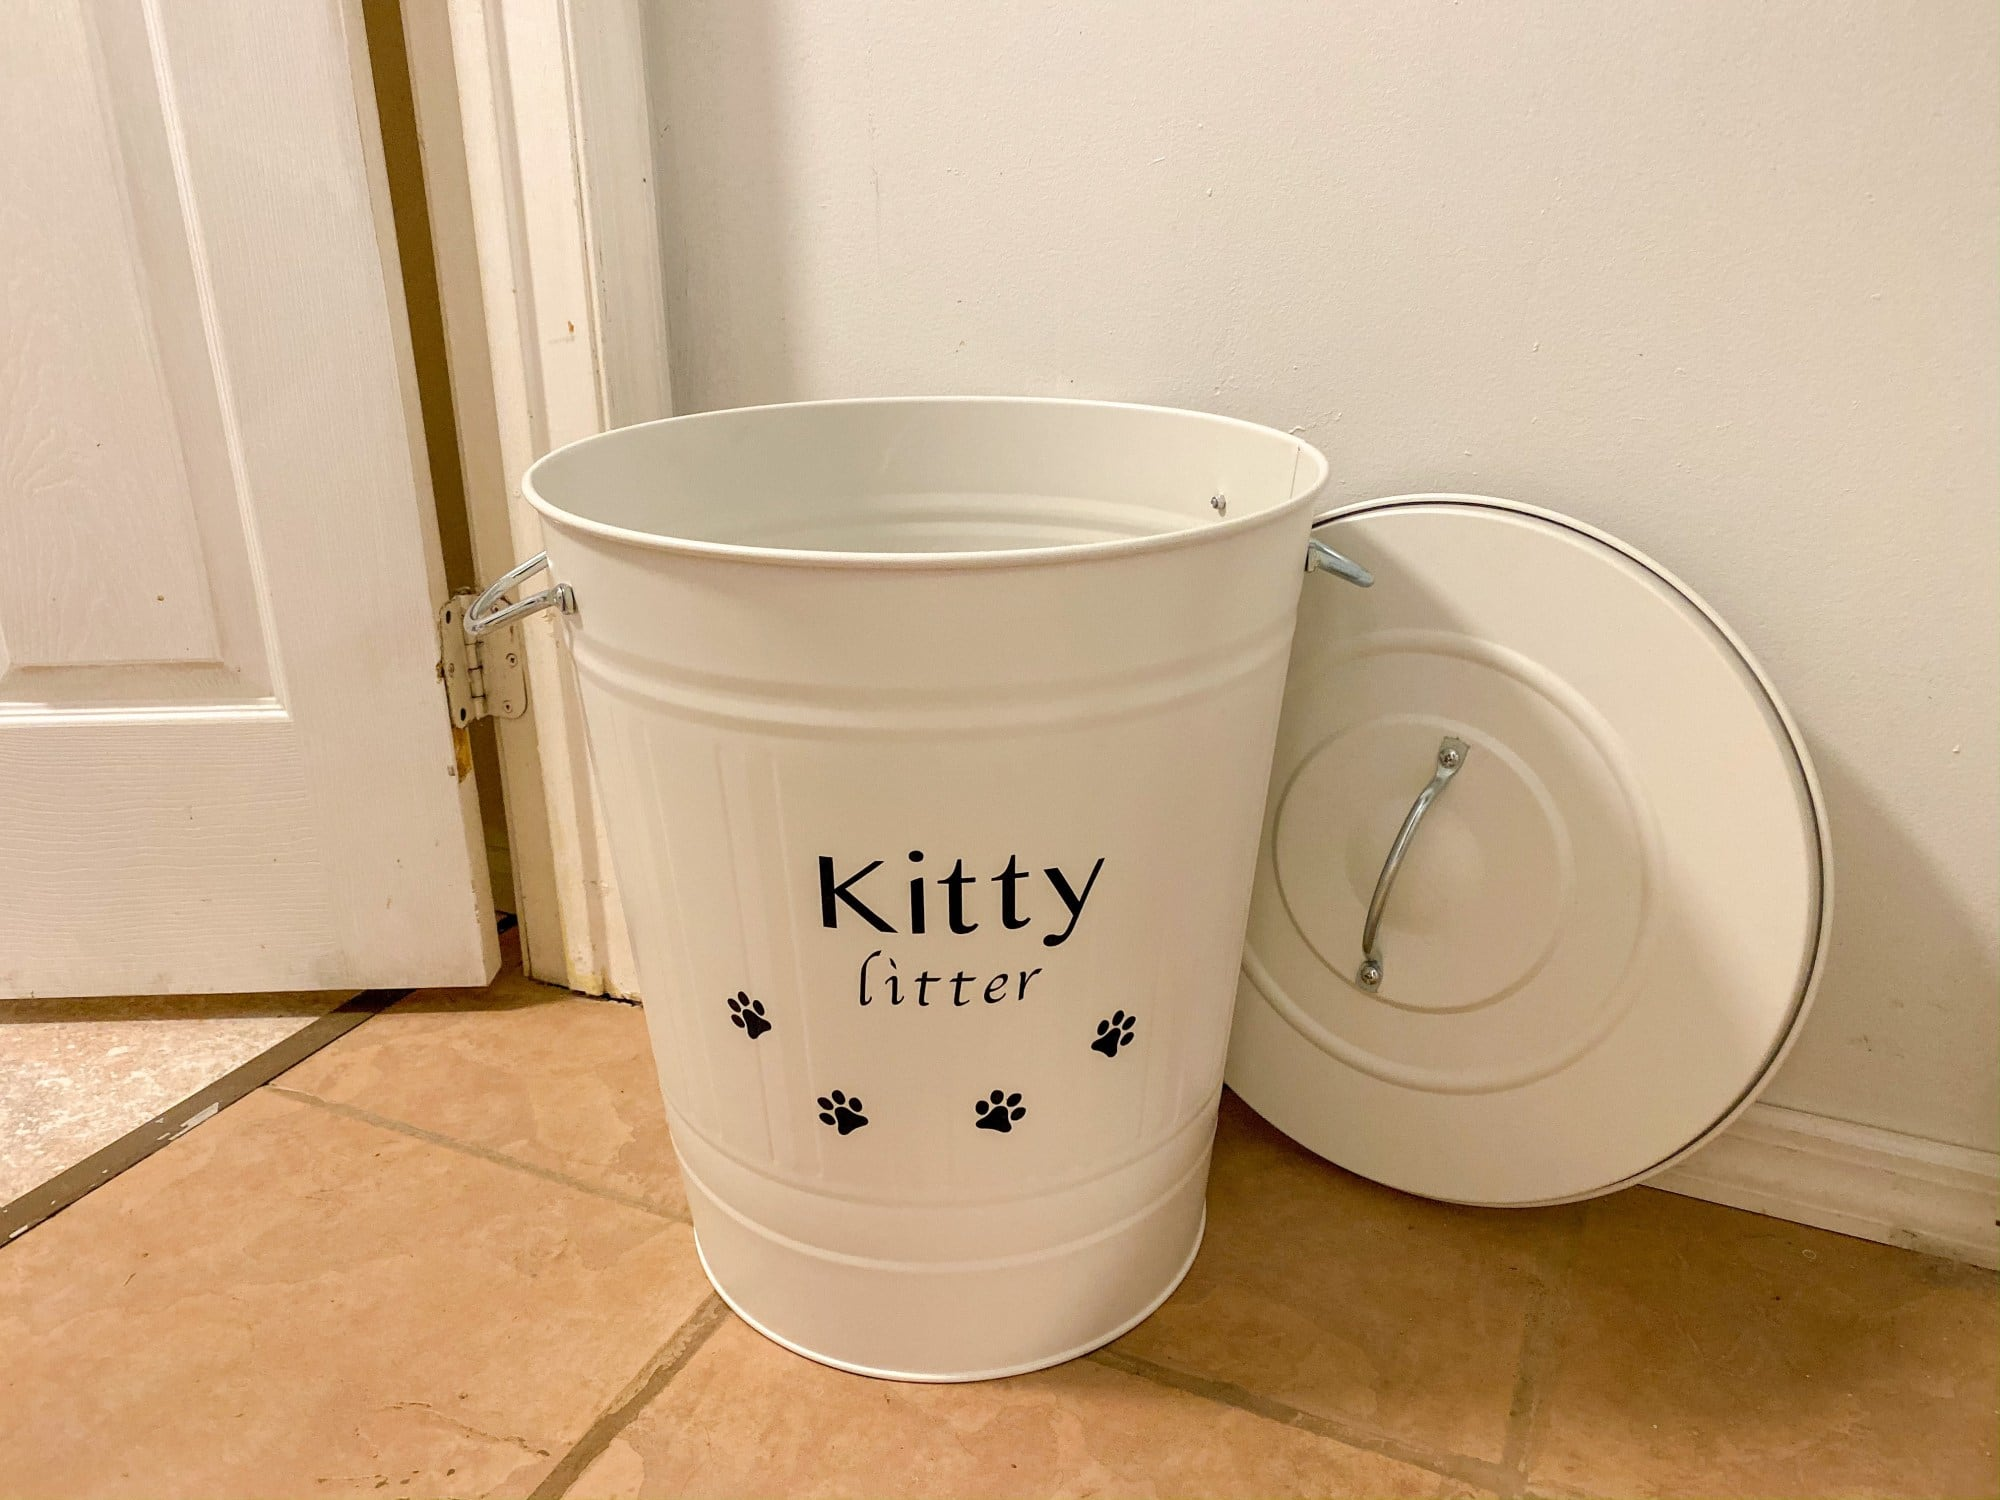 cricut-project-cat-litter-storage-container-14